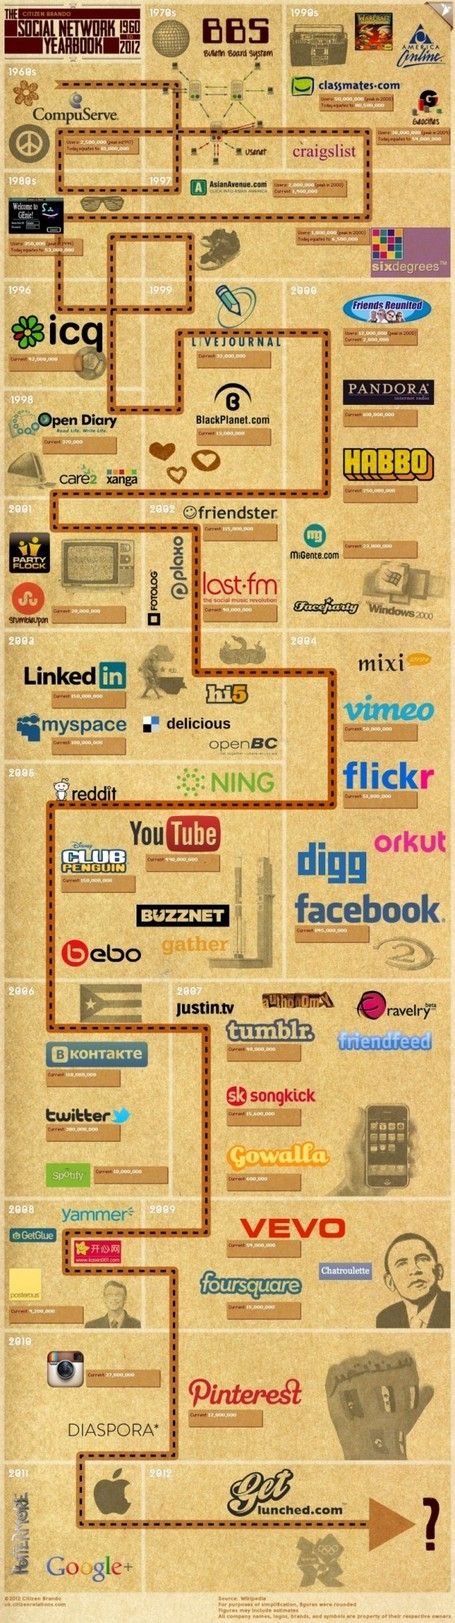 The Complete Timeline Of Social Networks, 1960-2012 [INFOGRAPHIC] | The *Official AndreasCY* Daily Magazine | Scoop.it